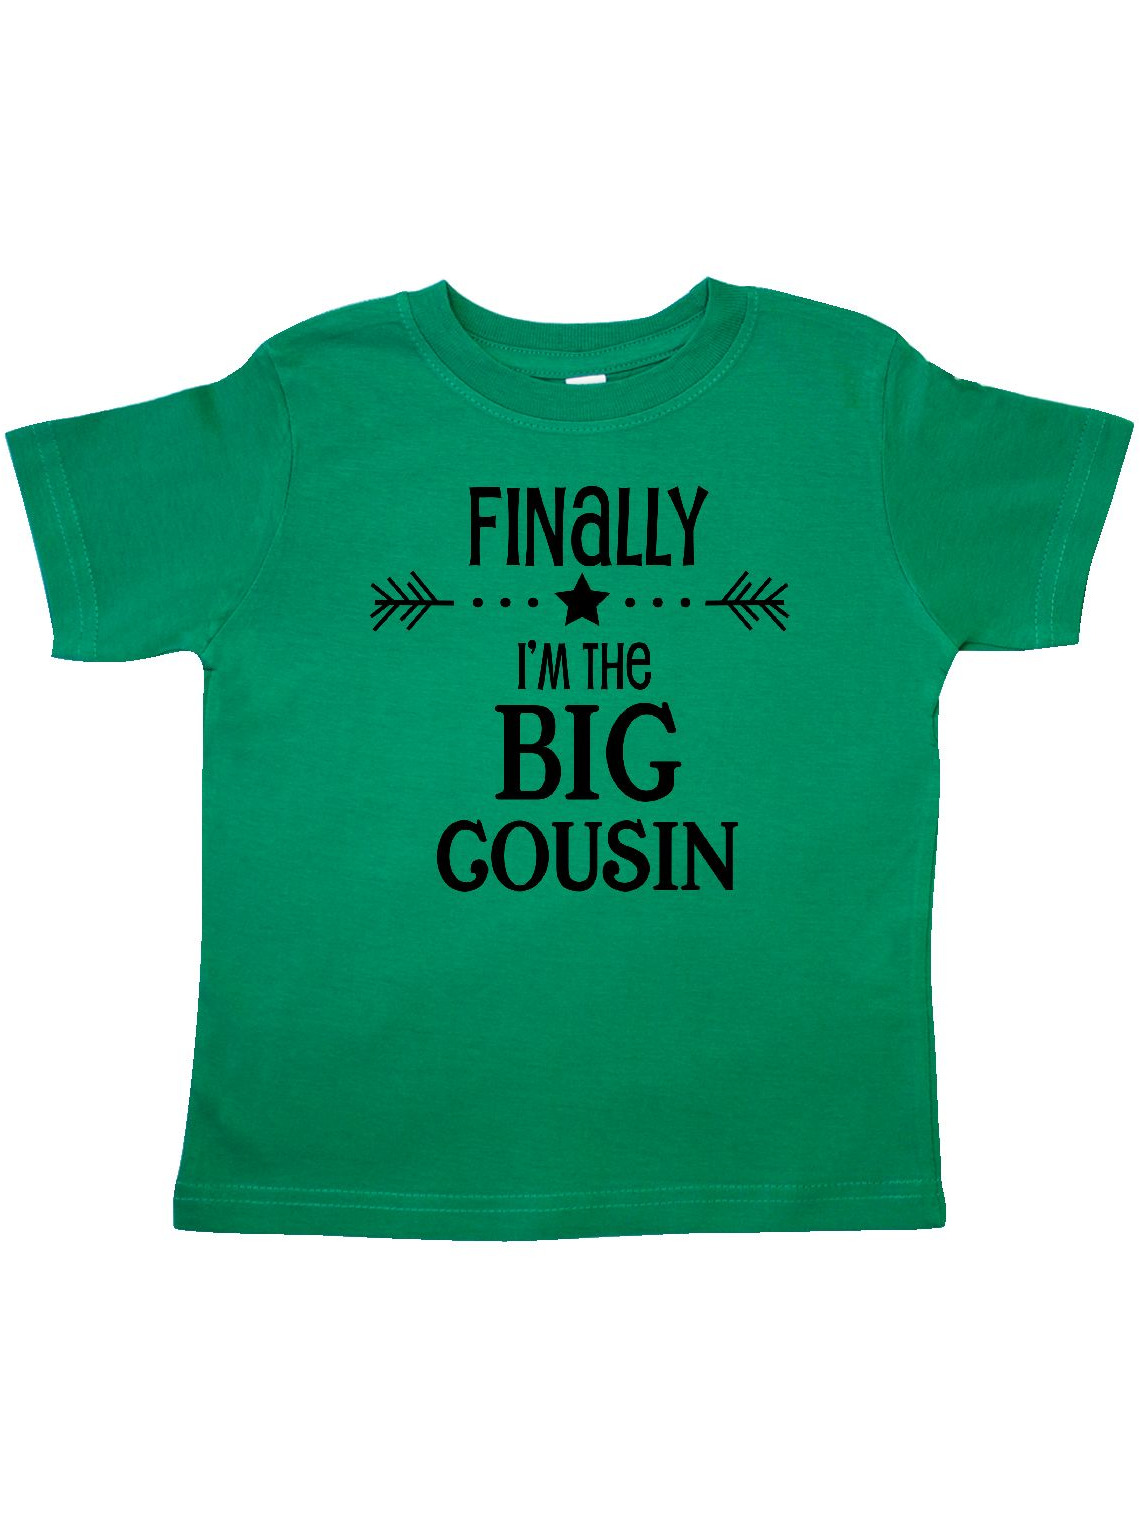 Finally I'm the Big Cousin Toddler T-Shirt